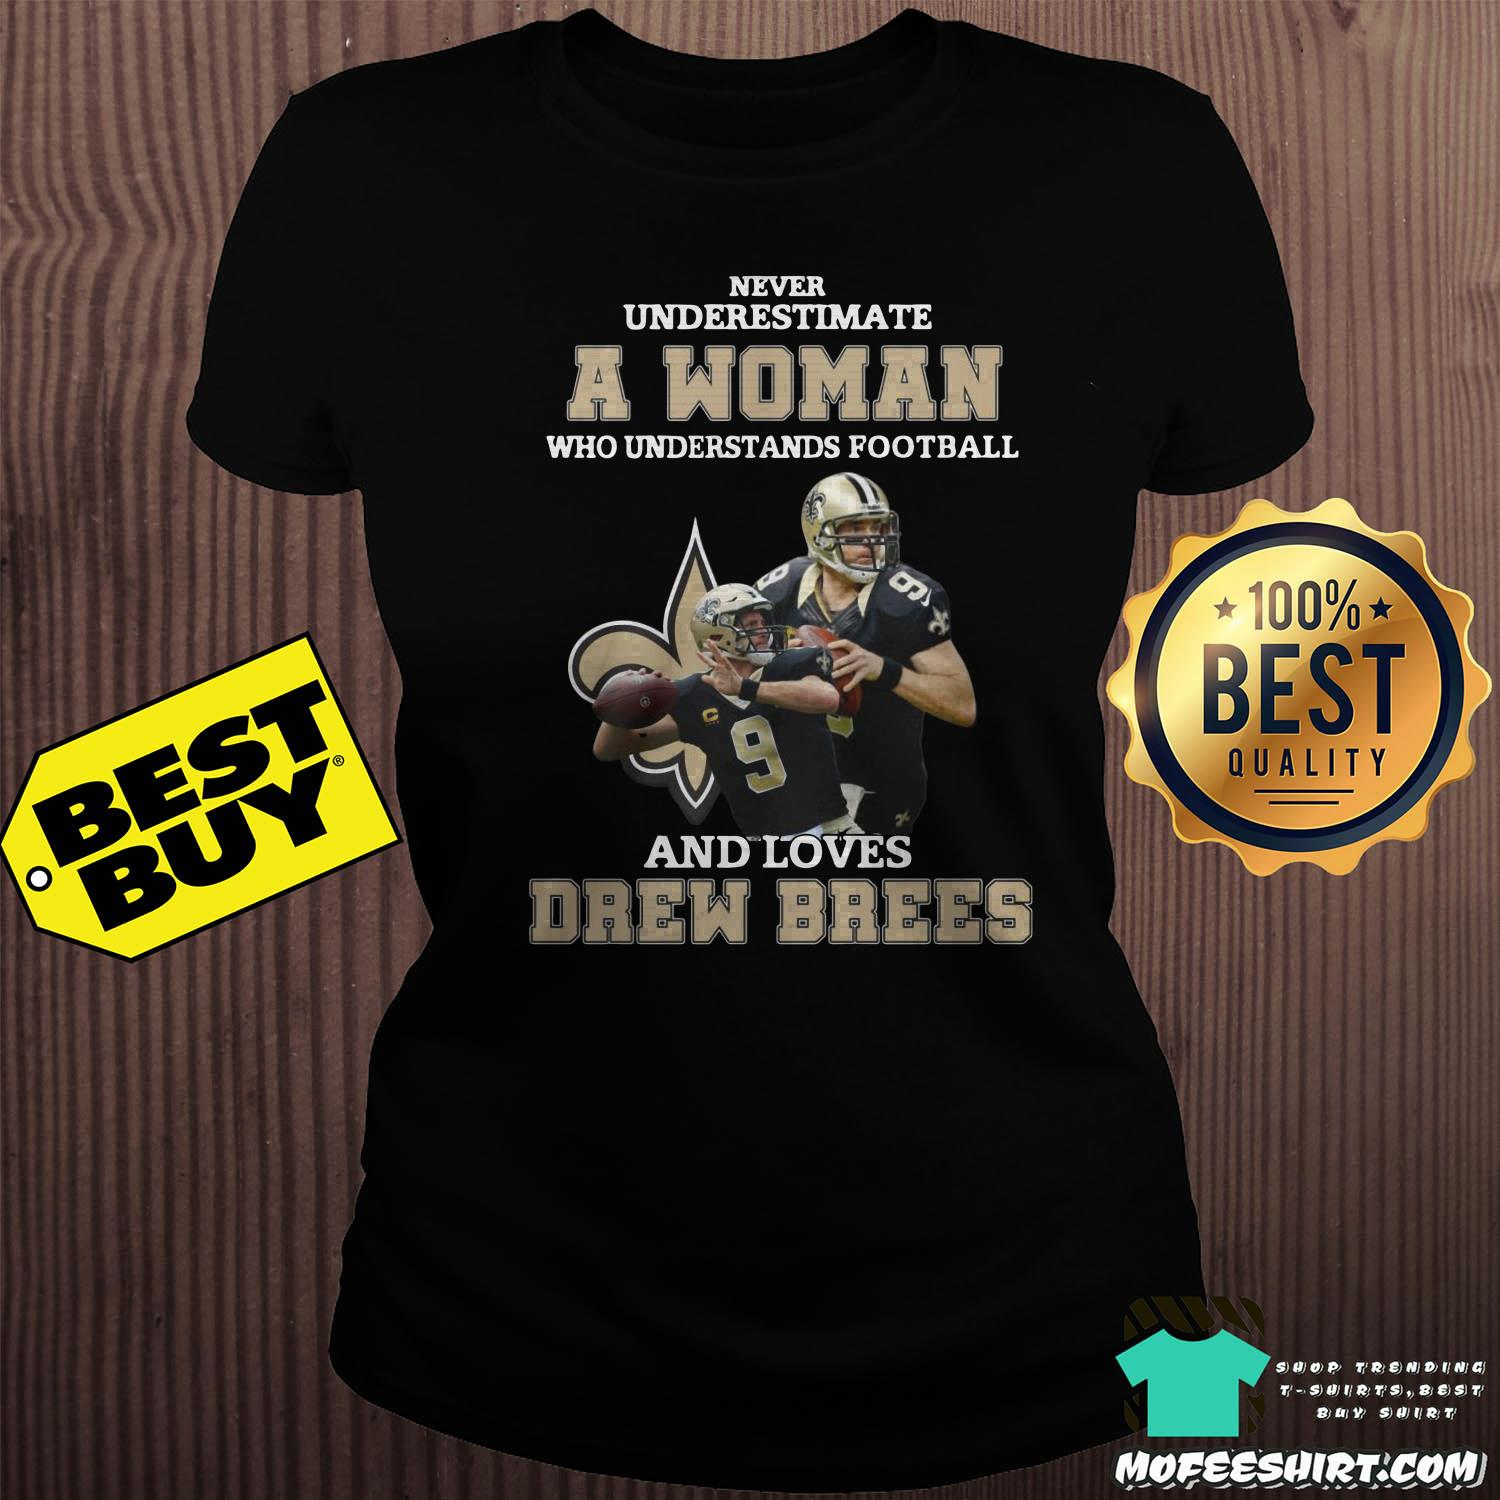 never underestimate a woman who understands football and loves drew brees ladies tee - Never underestimate A Woman Who Understands Football And Loves Drew Brees Shirt